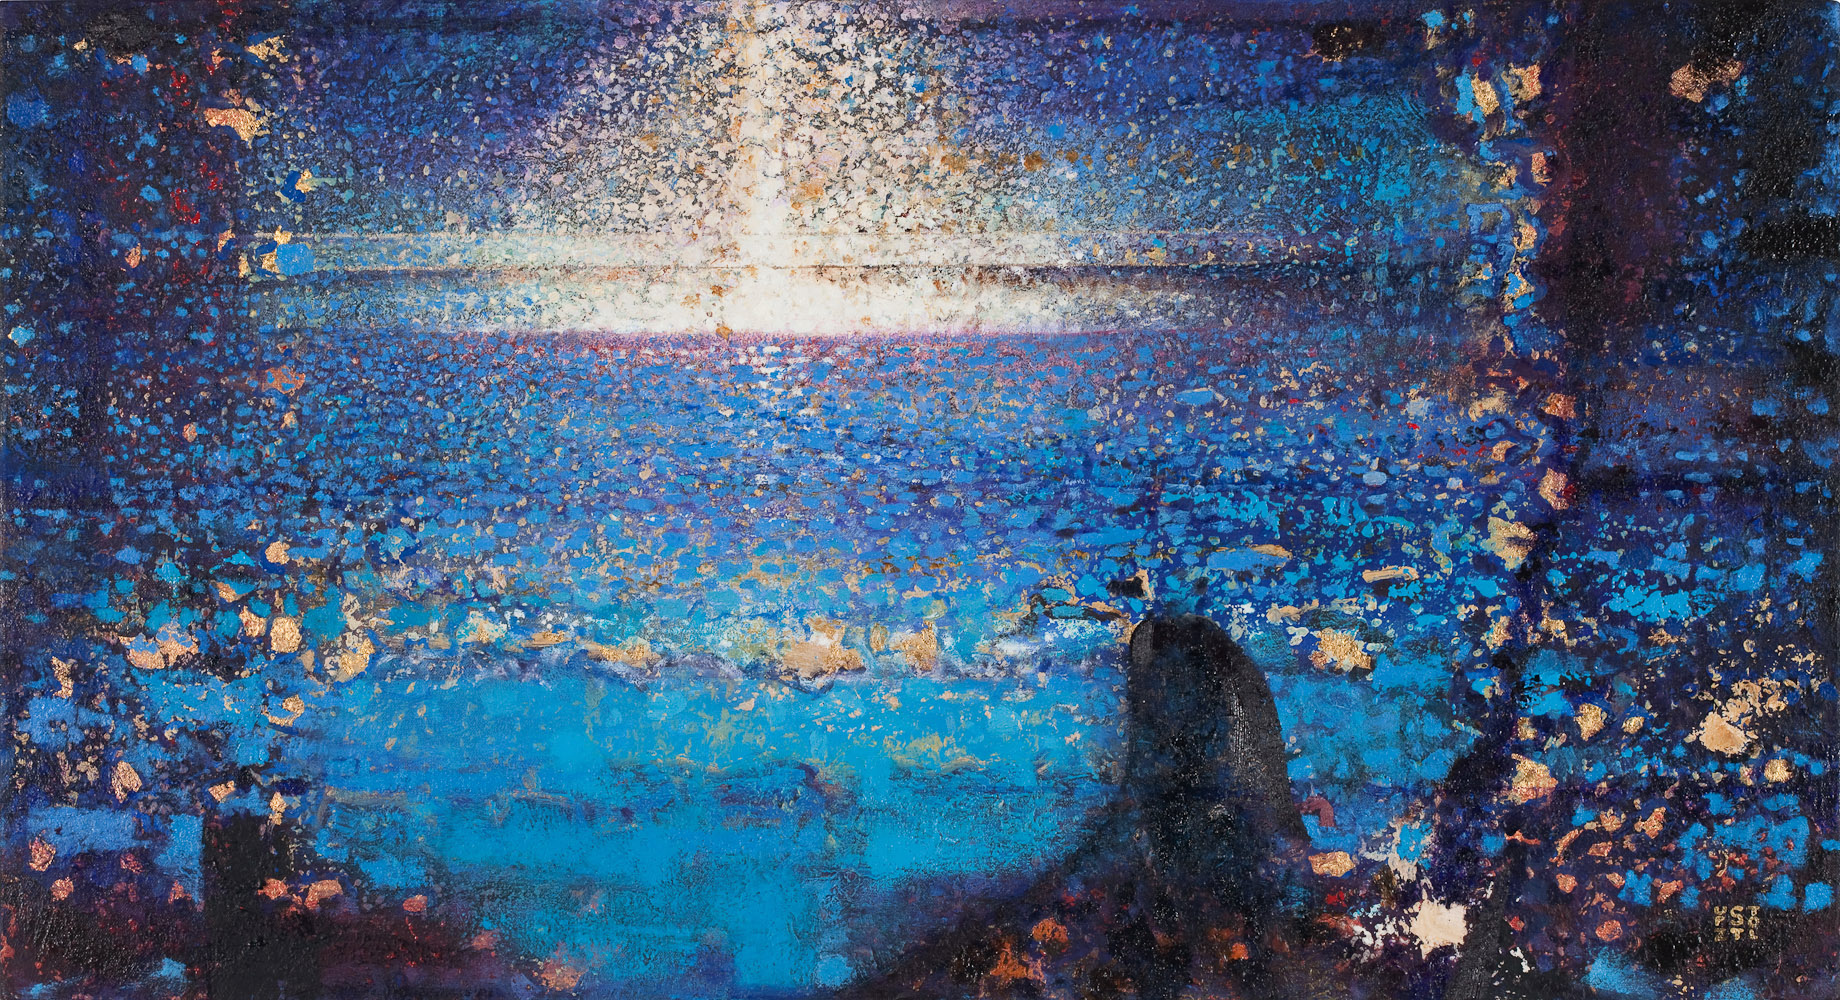 Five Miles Out by Randall Stoltzfus, 2009, oil and gold leaf on canvas over panel, 20 by 36 inches